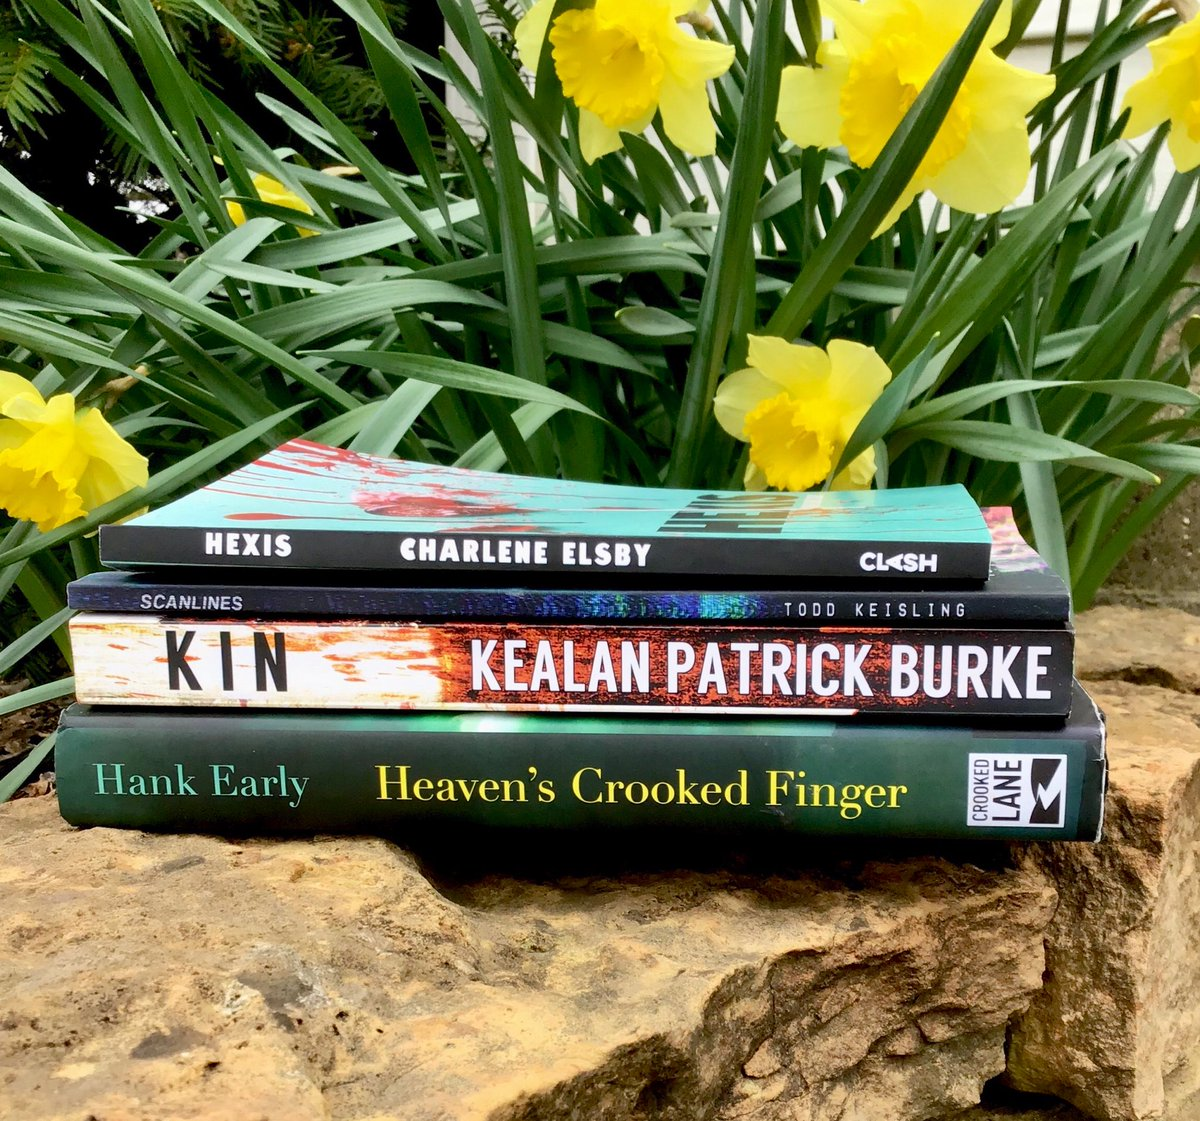 March wrap up! I ended up reading 6 books which is a departure from my norm, but isn't that the case with *gestures wildly*. Thanks to these authors for their words. KIN was a re-read and I can now highly recommend the book AND the audio.